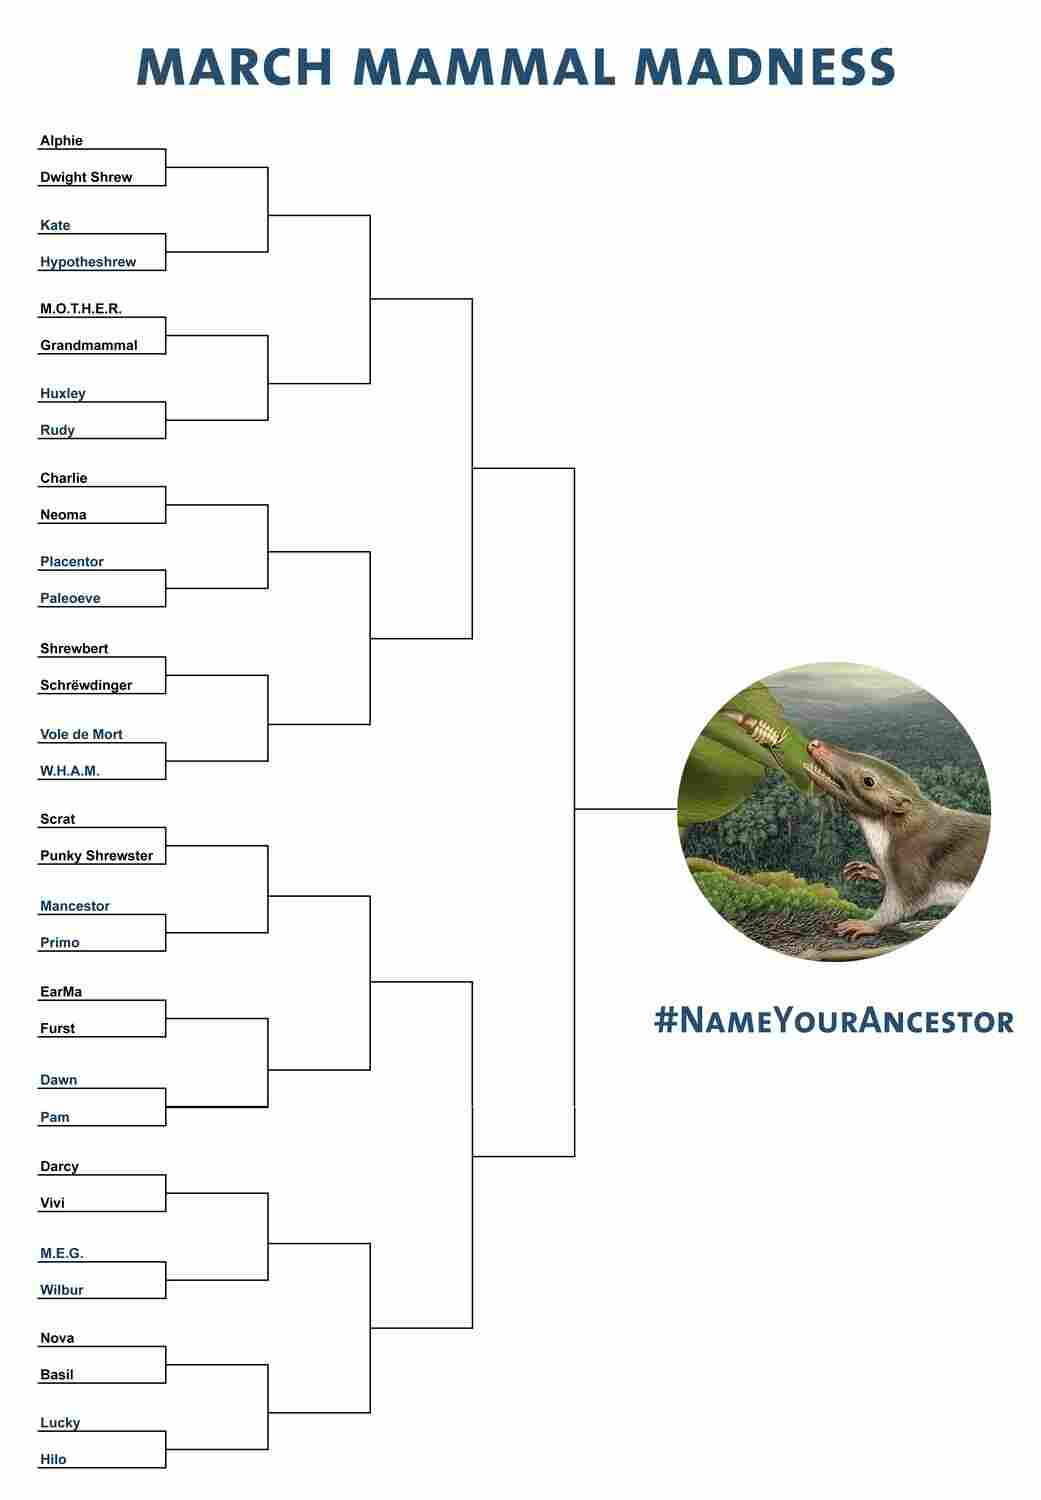 Mammal March Madness